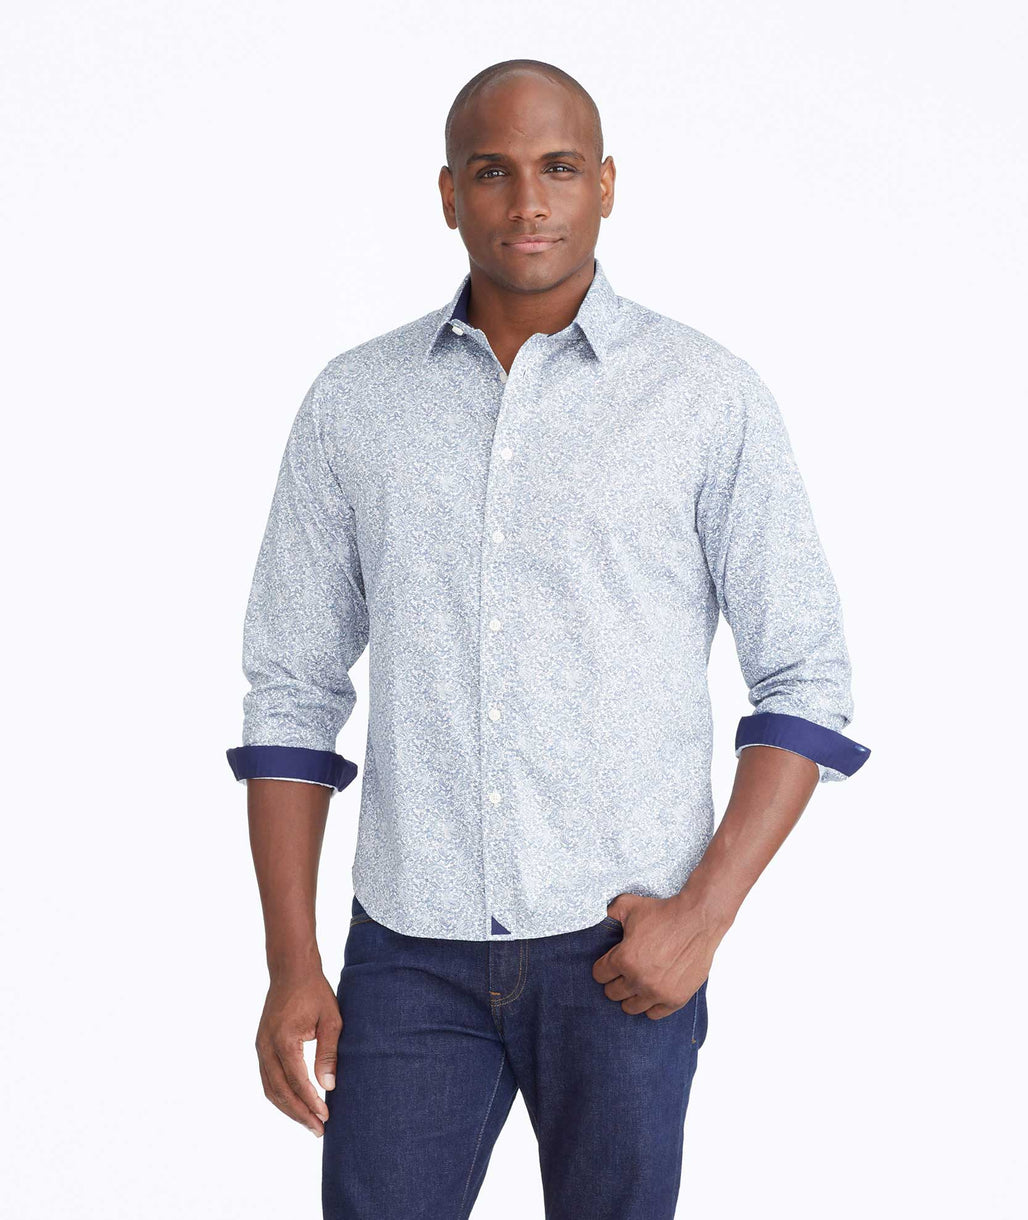 Model wearing a Navy Classic Cotton Cradamone Shirt